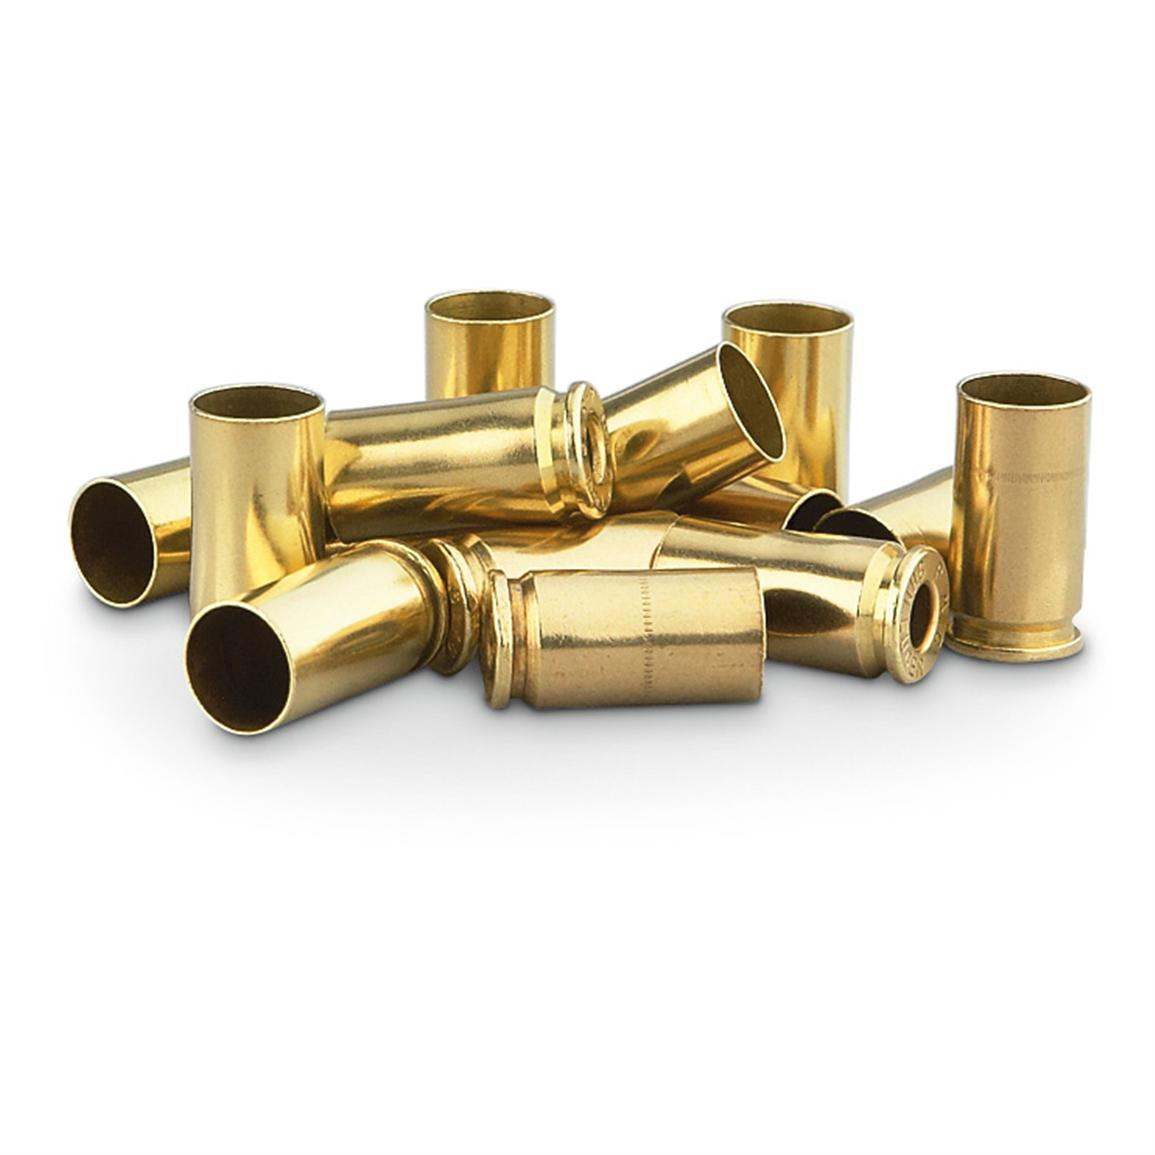 1,000 rds. 9mm Processed Brass